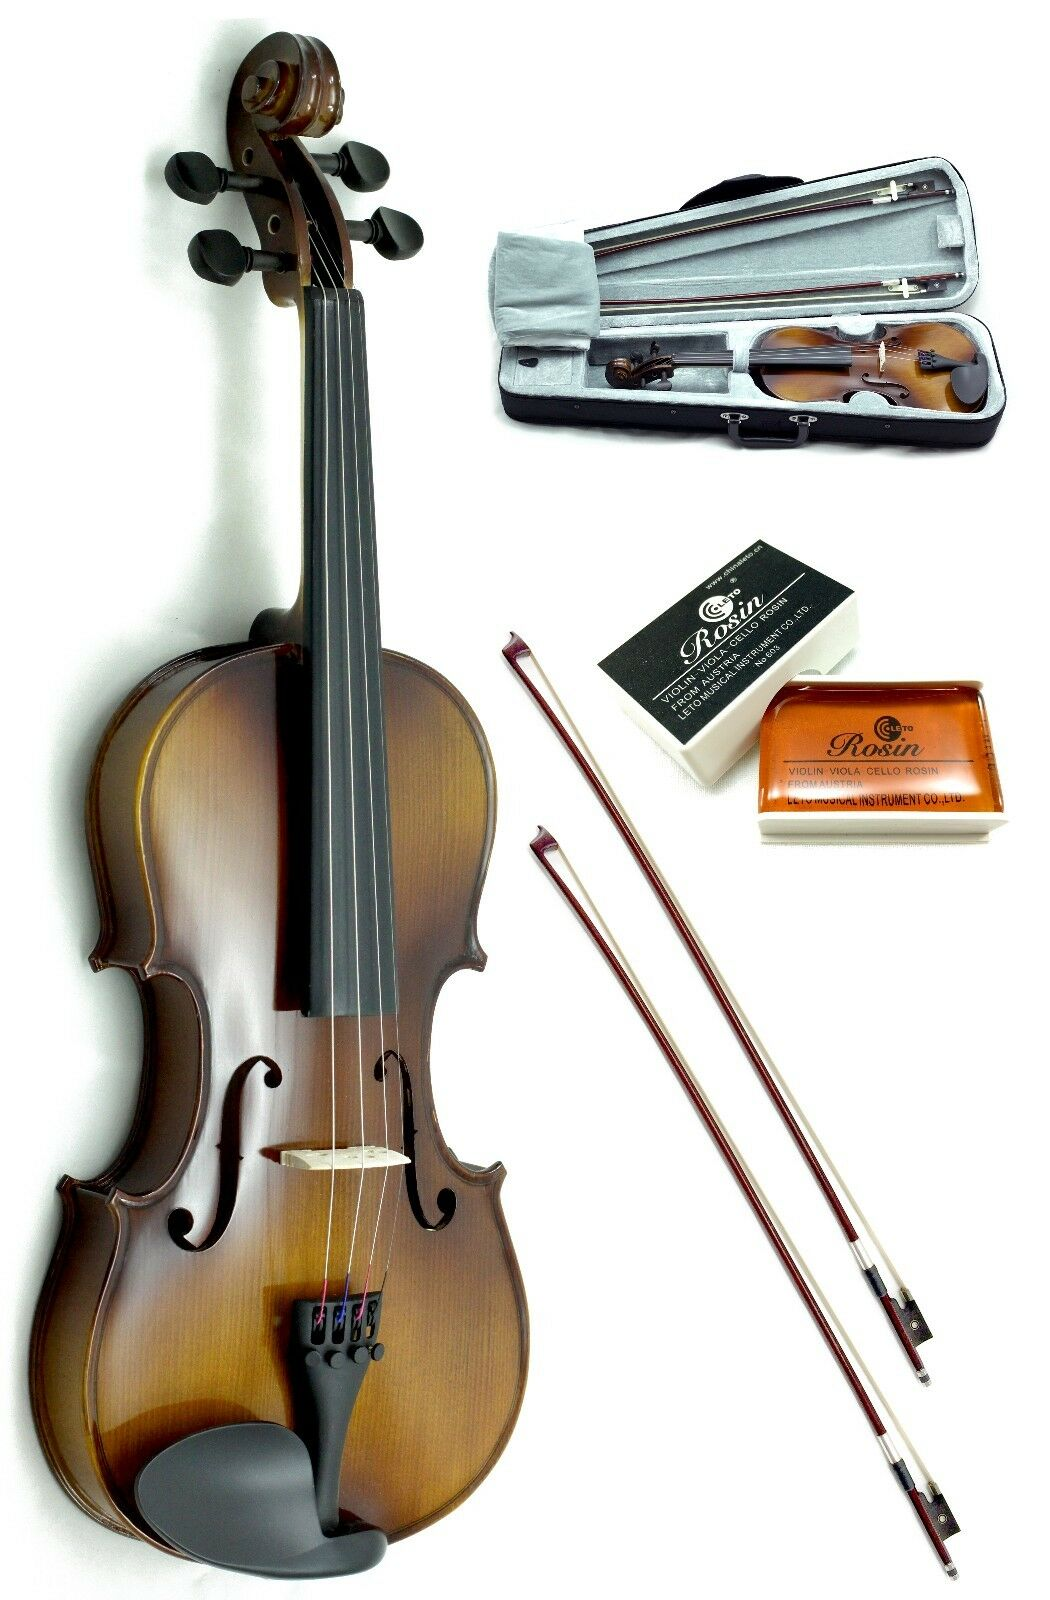 New 4 4 Full Size Solid Wood Violin w Rosin, Lightweight Case+Extra Bow